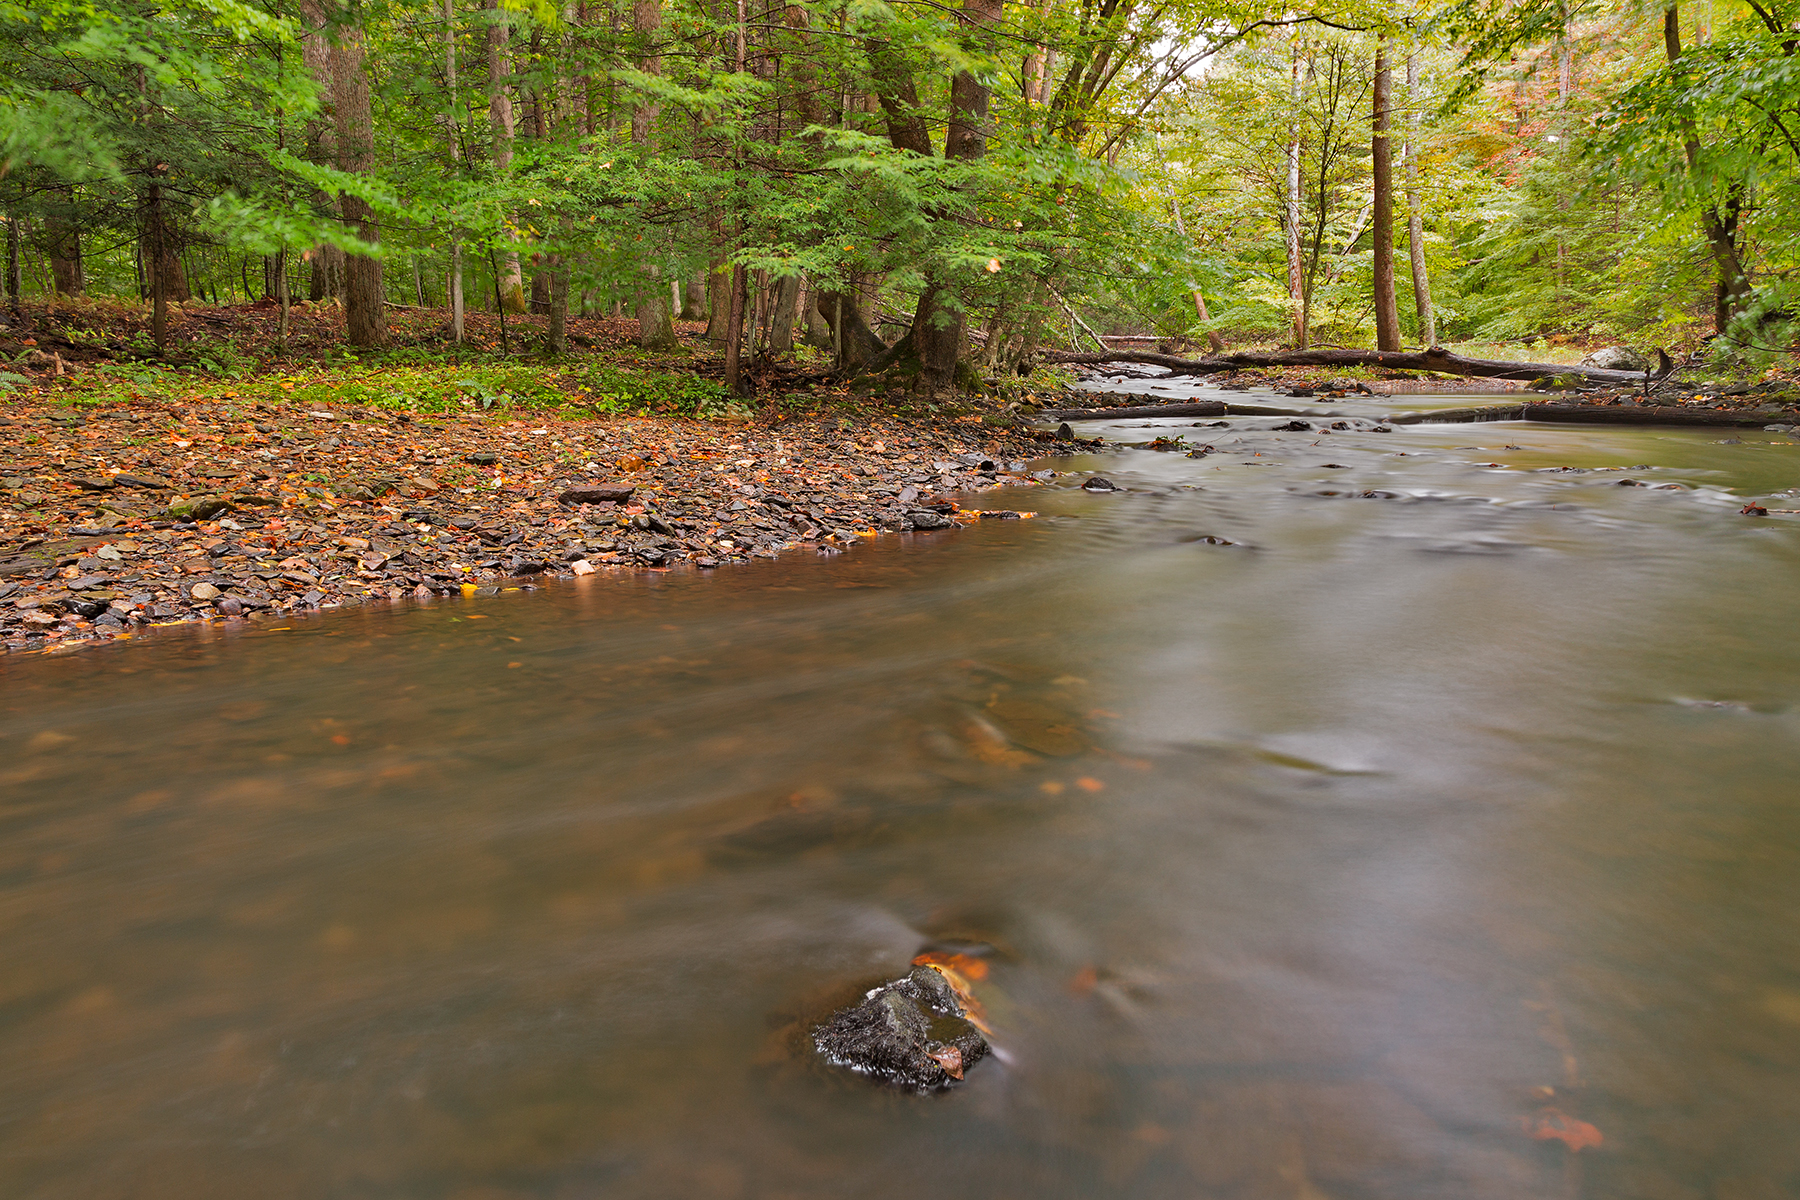 Big Hunting Creek, America, Somadjinn, Soft, Smooth, HQ Photo